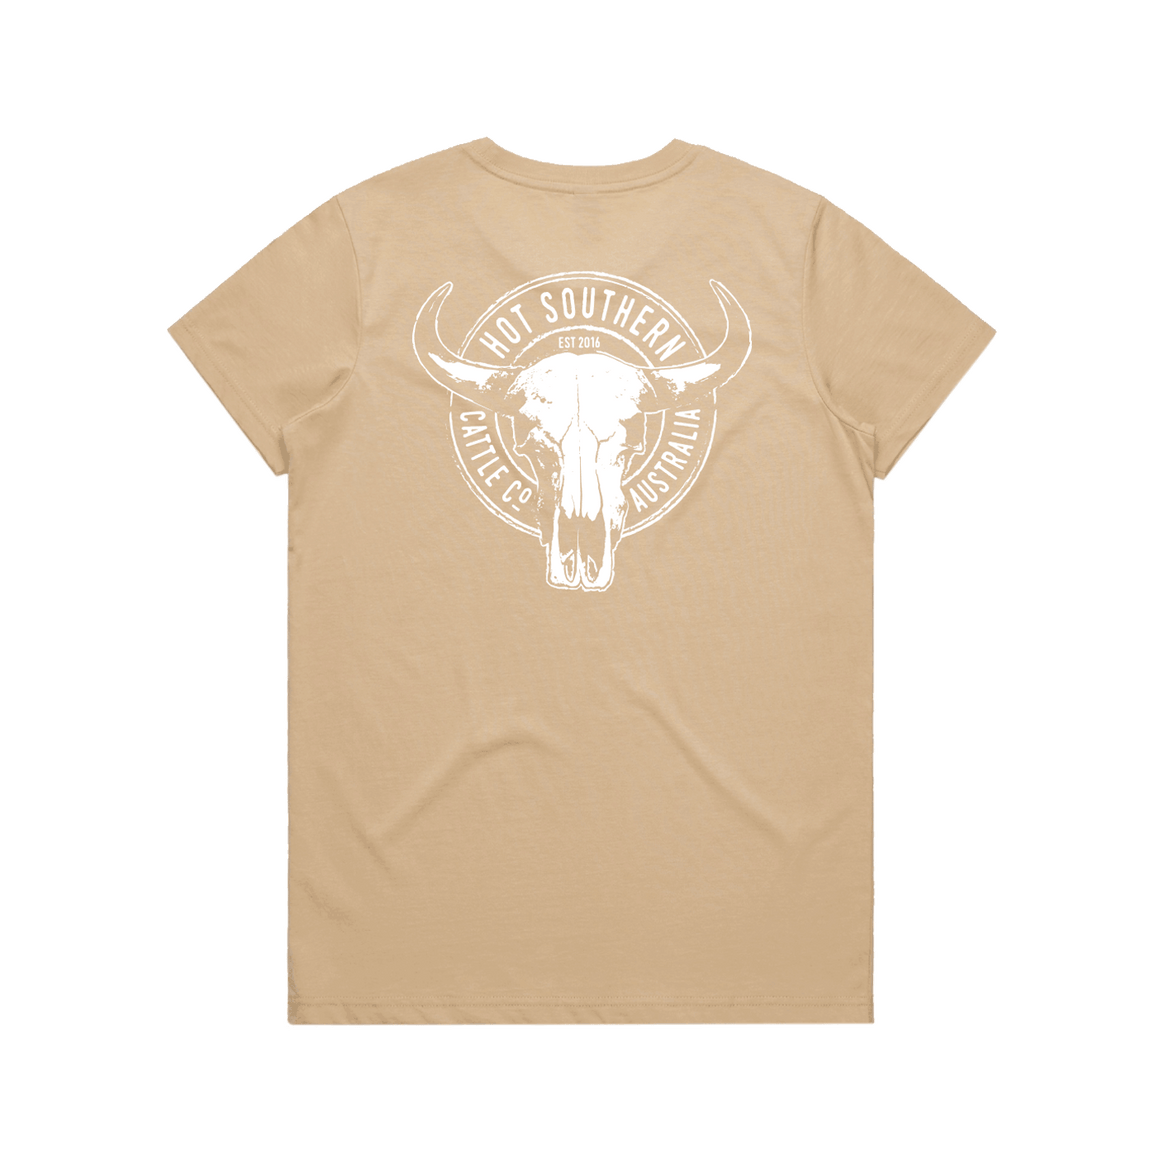 Hot Southern Cattle Co Tan Womens Crew Neck T-Shirt